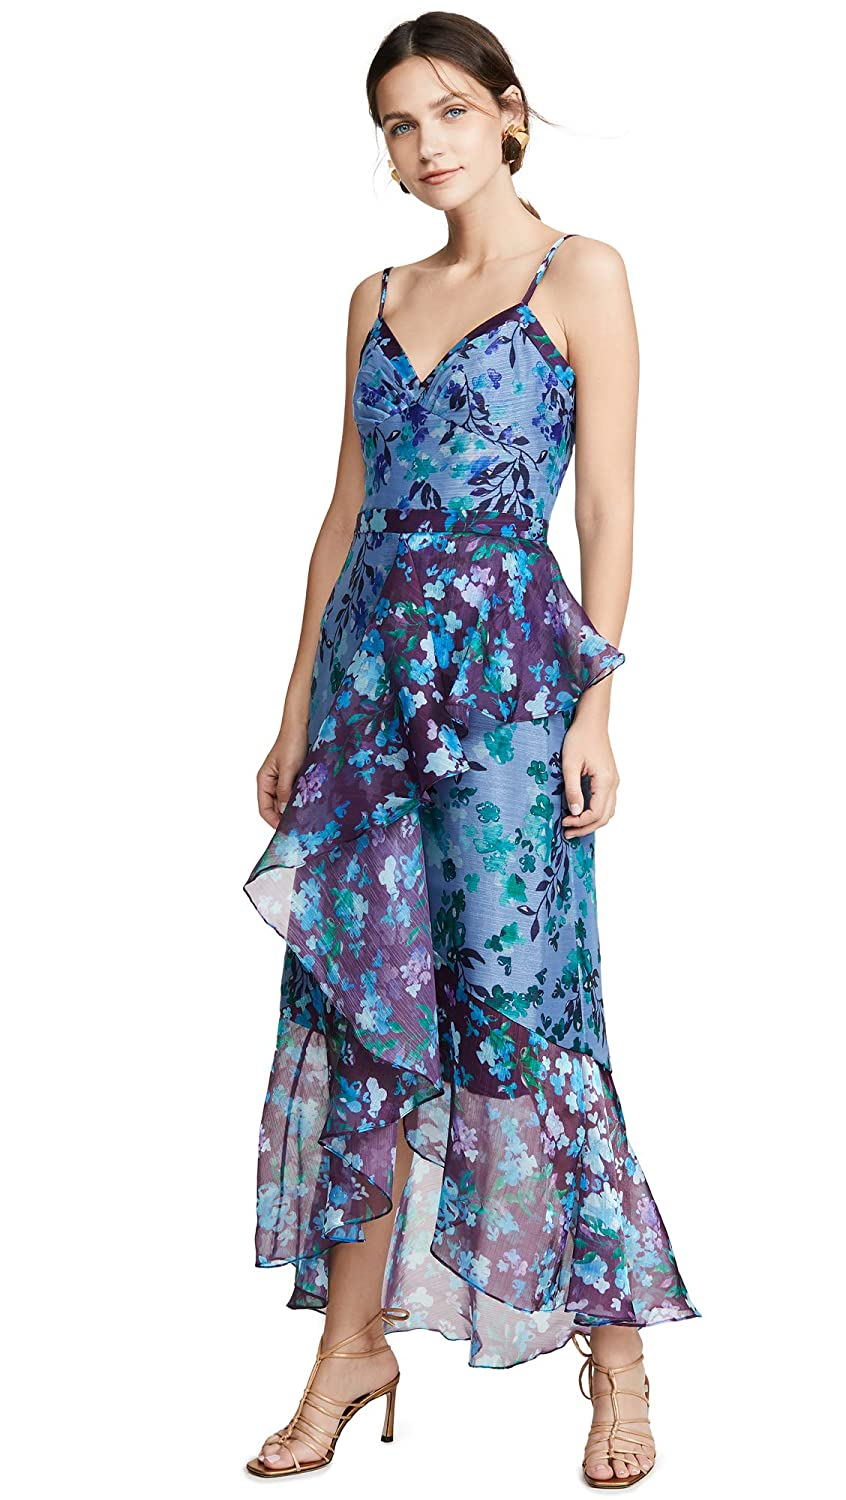 b513c5b2 Marchesa Notte Women's Sleeveless Colorblock High Low Gown at Amazon  Women's Clothing store: